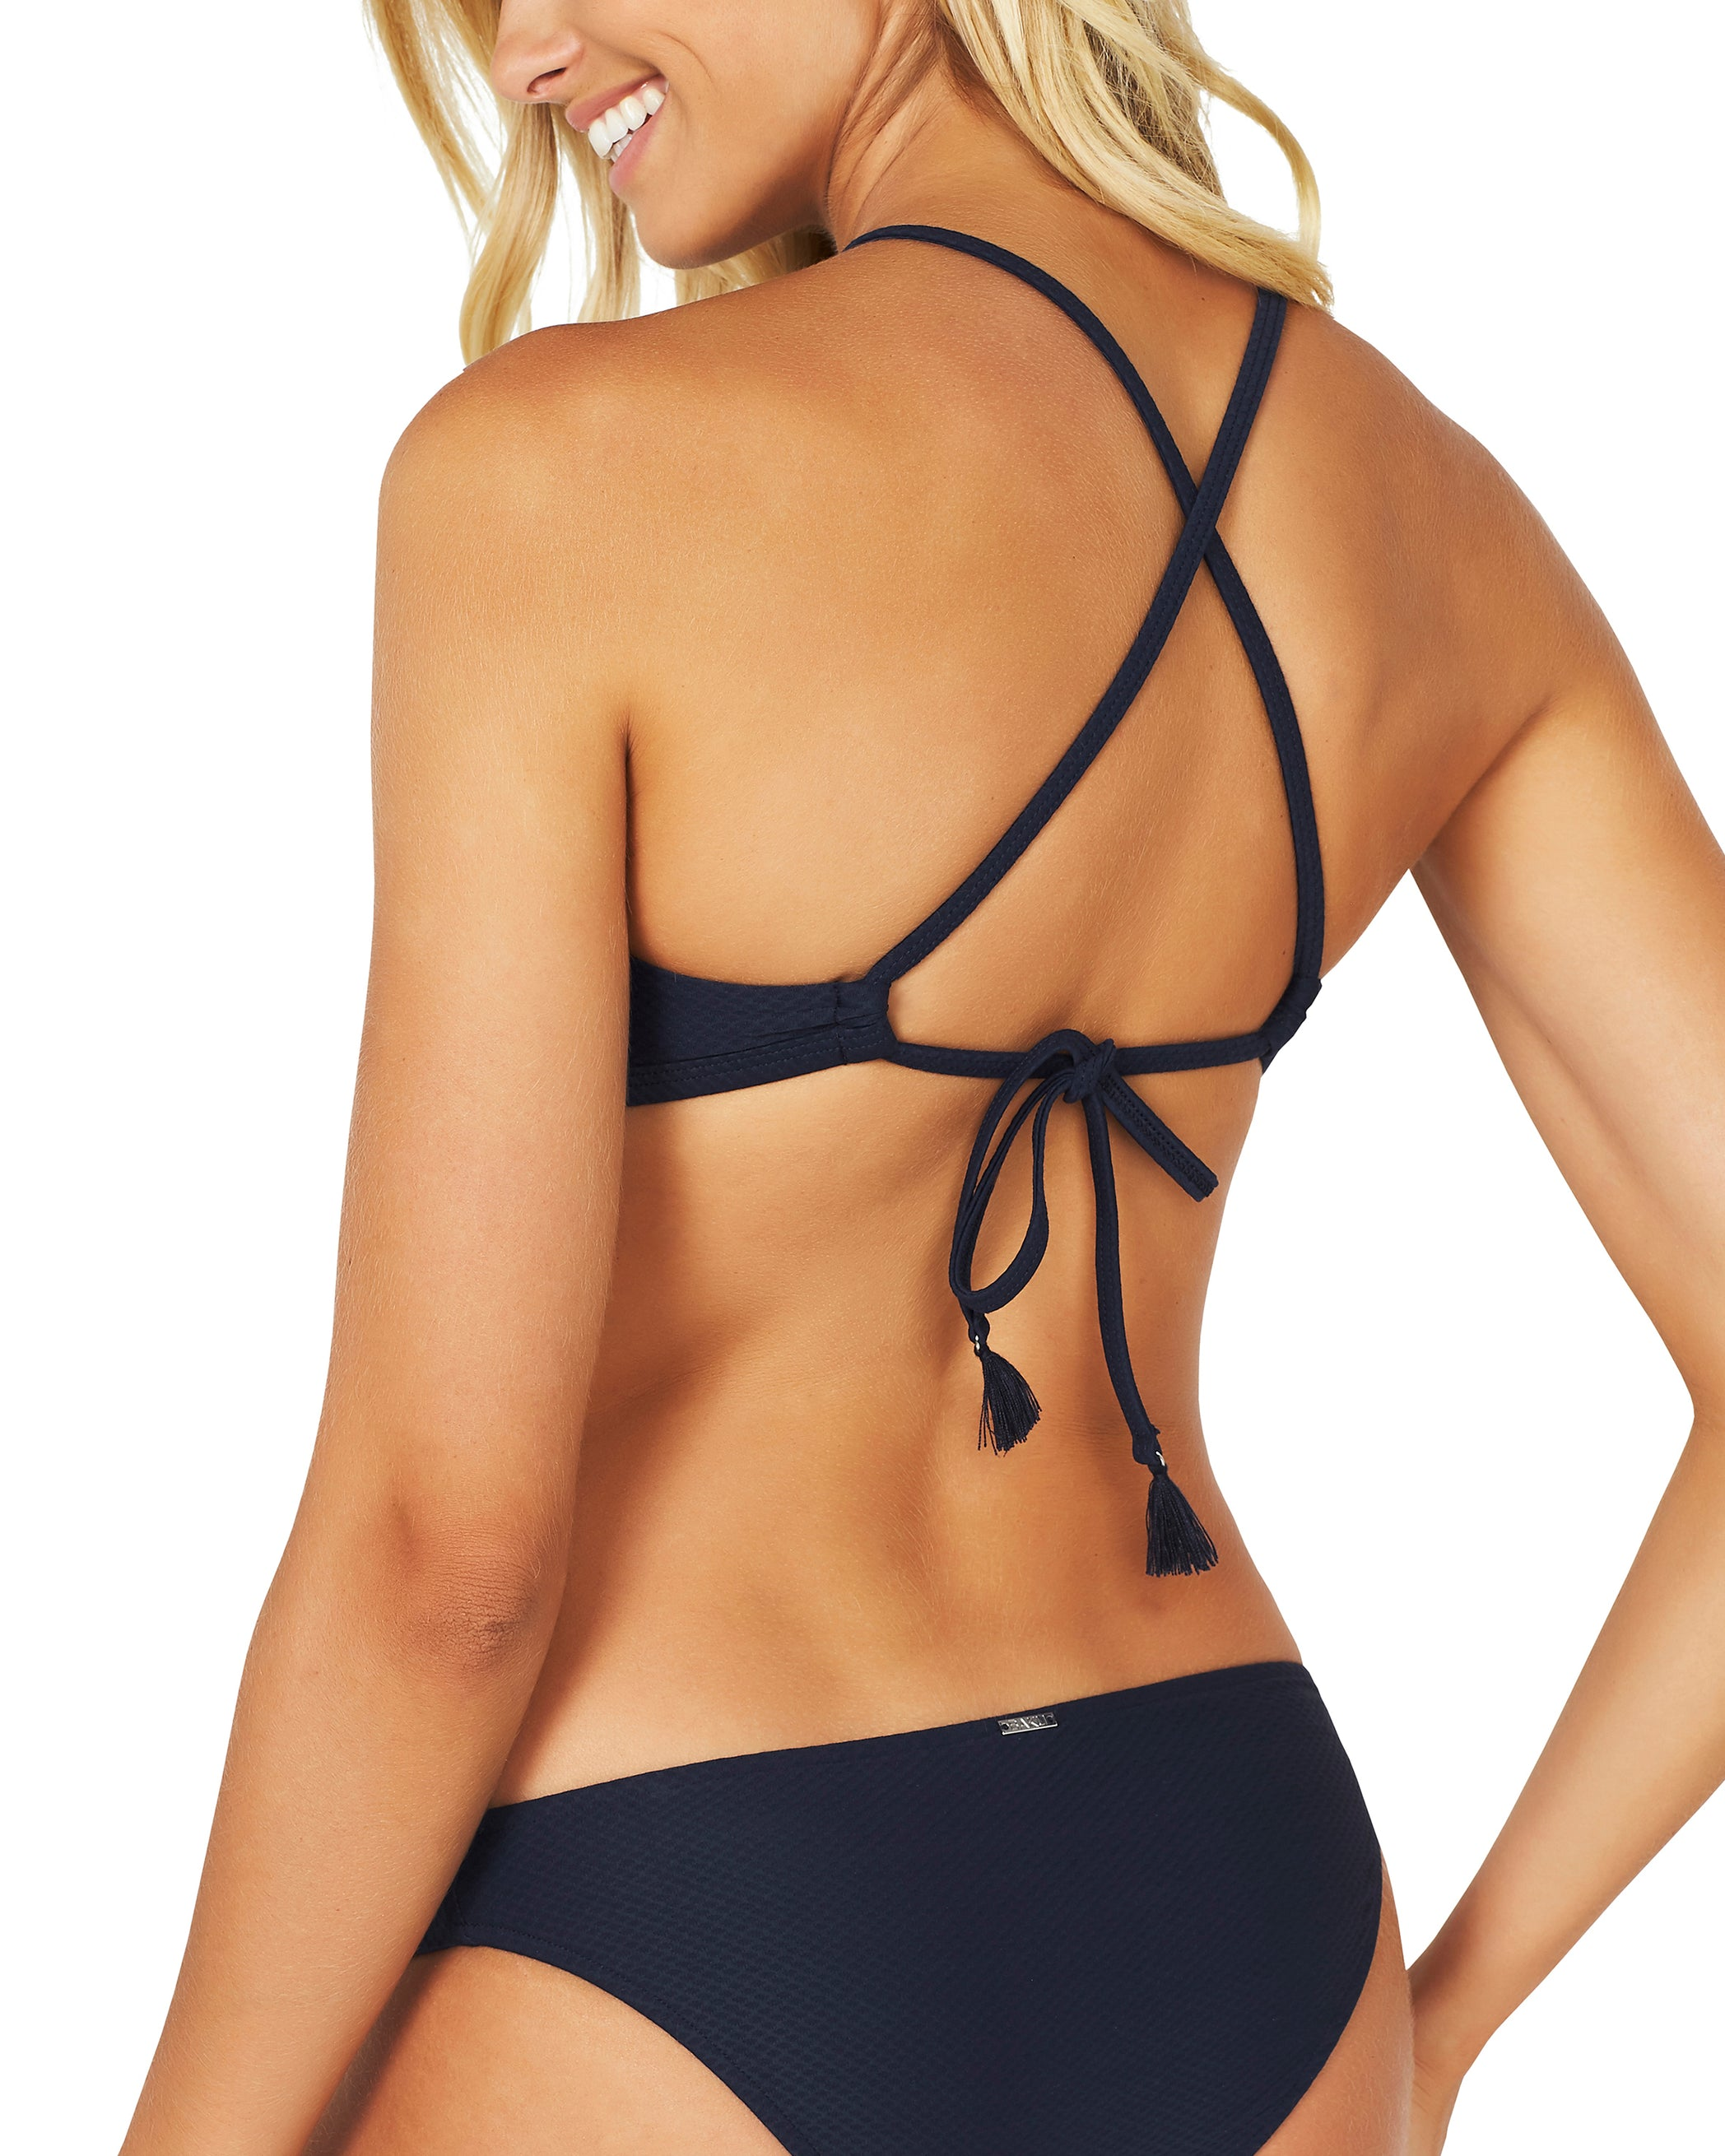 ROCOCCO HIGH NECK LACE UP BRA BIKINI TOP